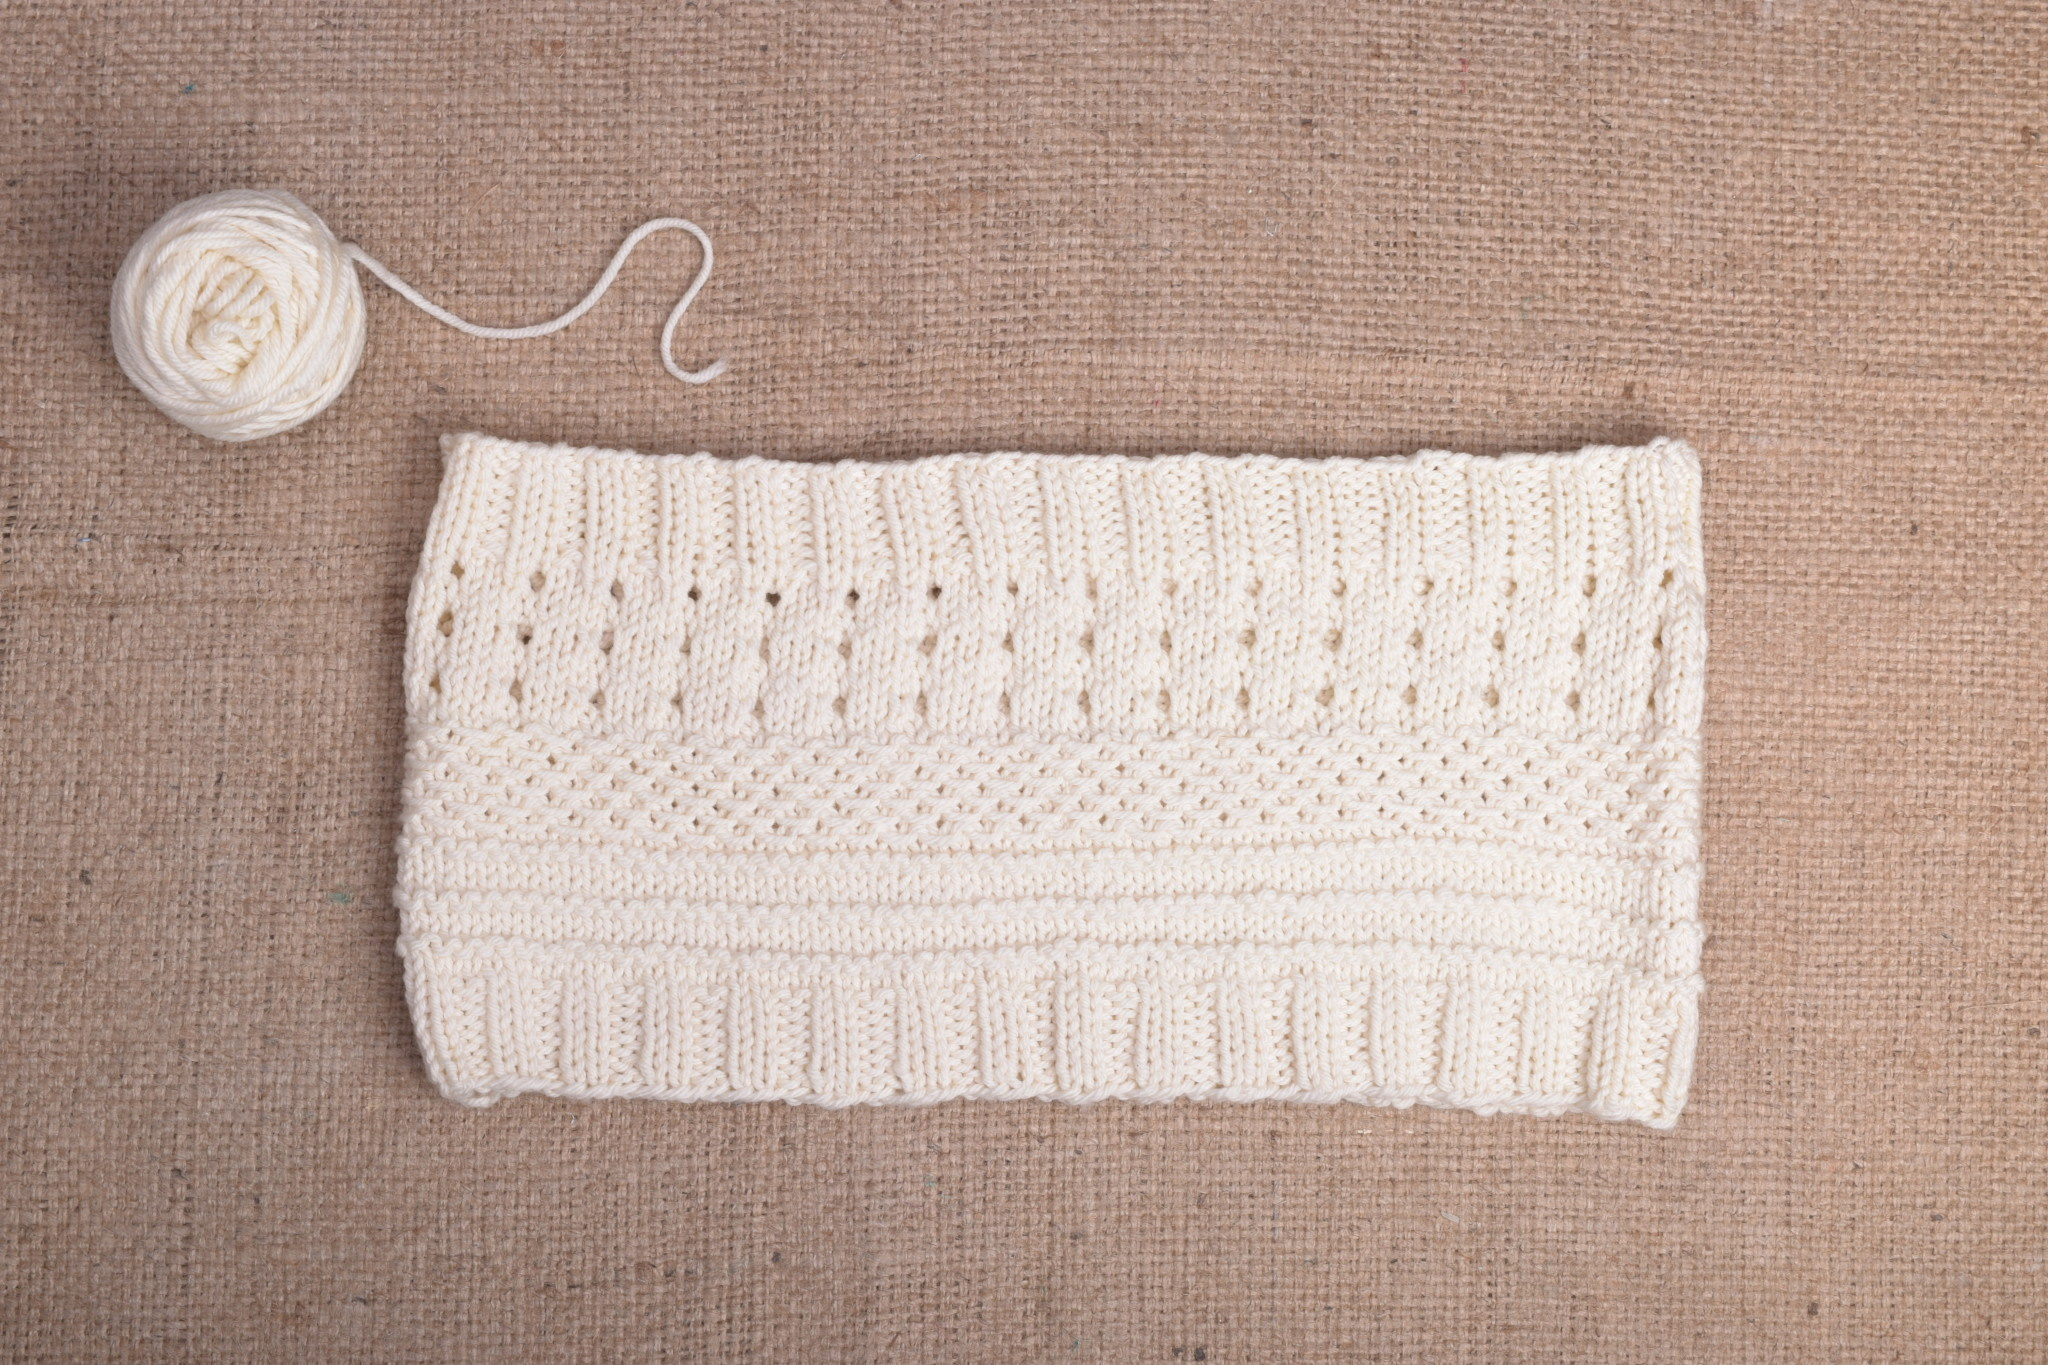 Knitting 101: Learn to Knit; Tuesday, May 7, 14, 21, 28;  1:00-3:00PM